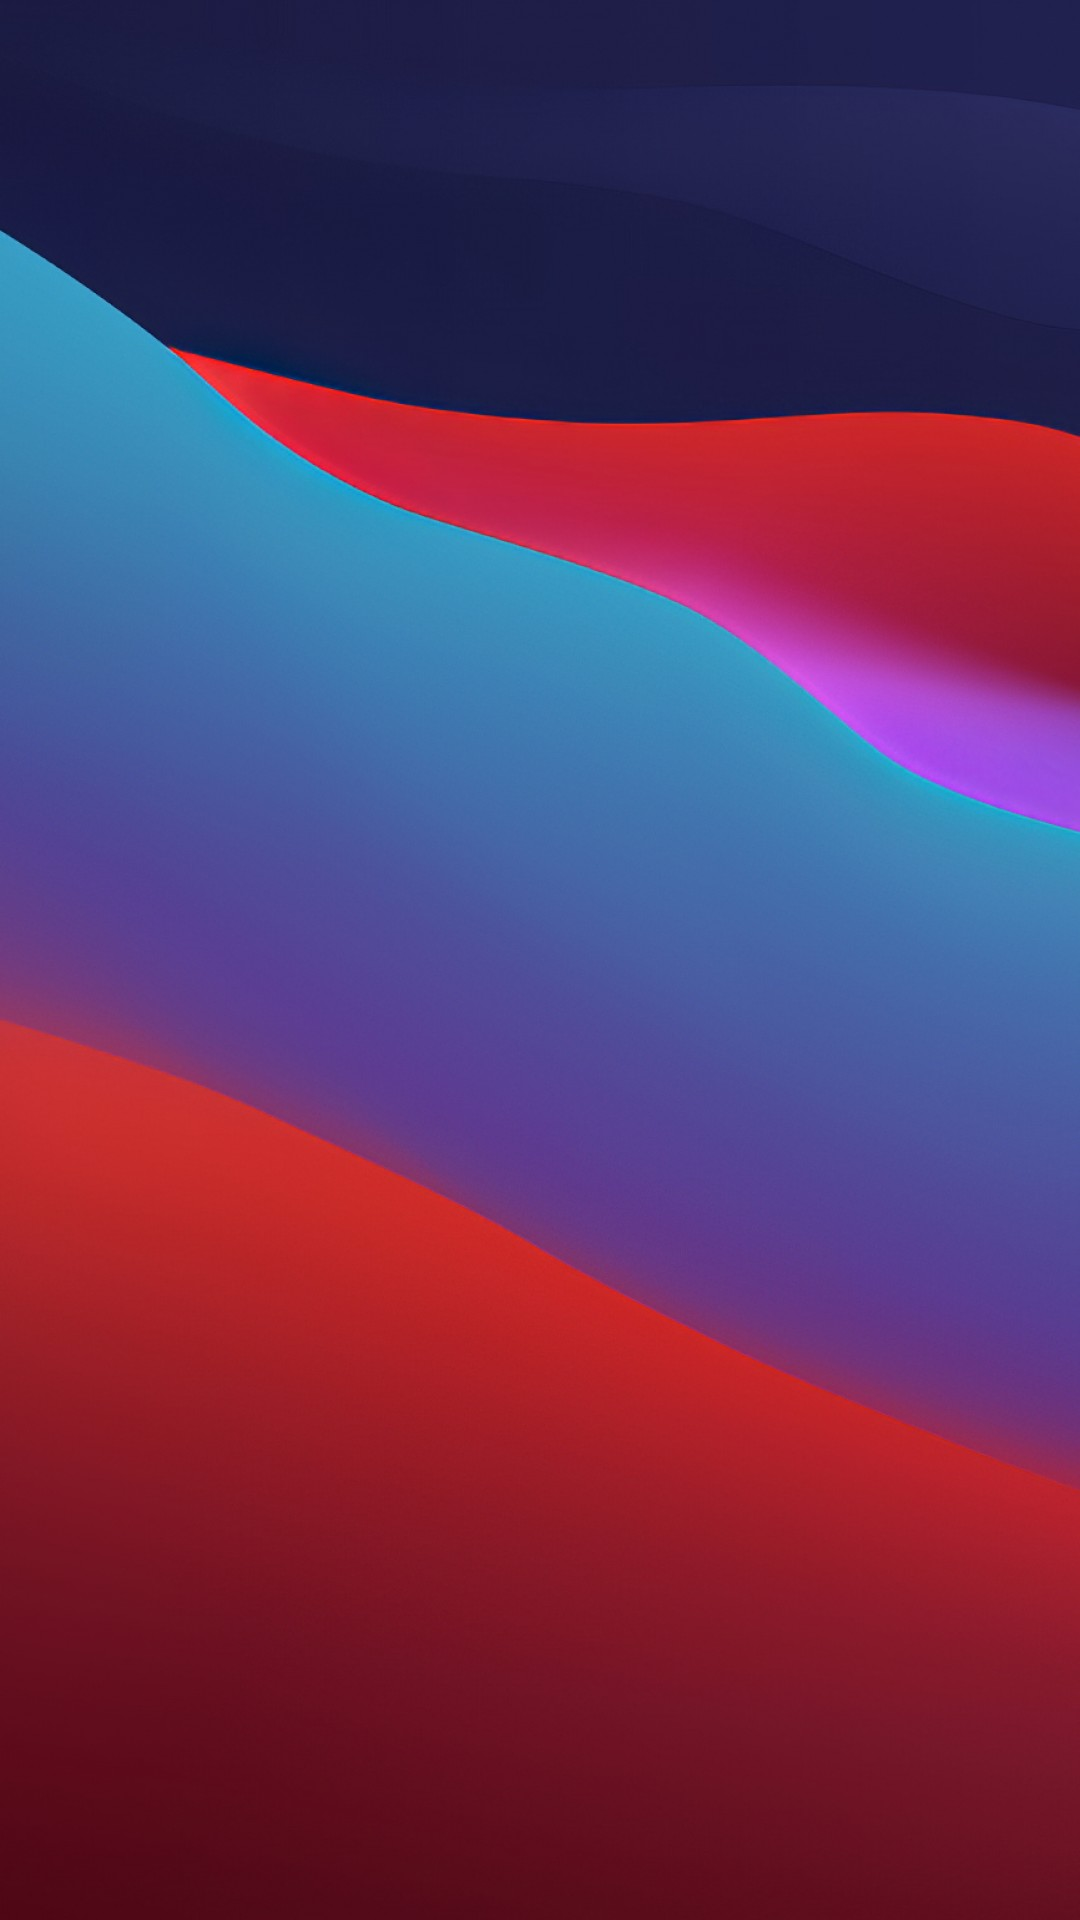 Wallpaper Macos Big Sur Dark Wwdc 2020 Os 22655